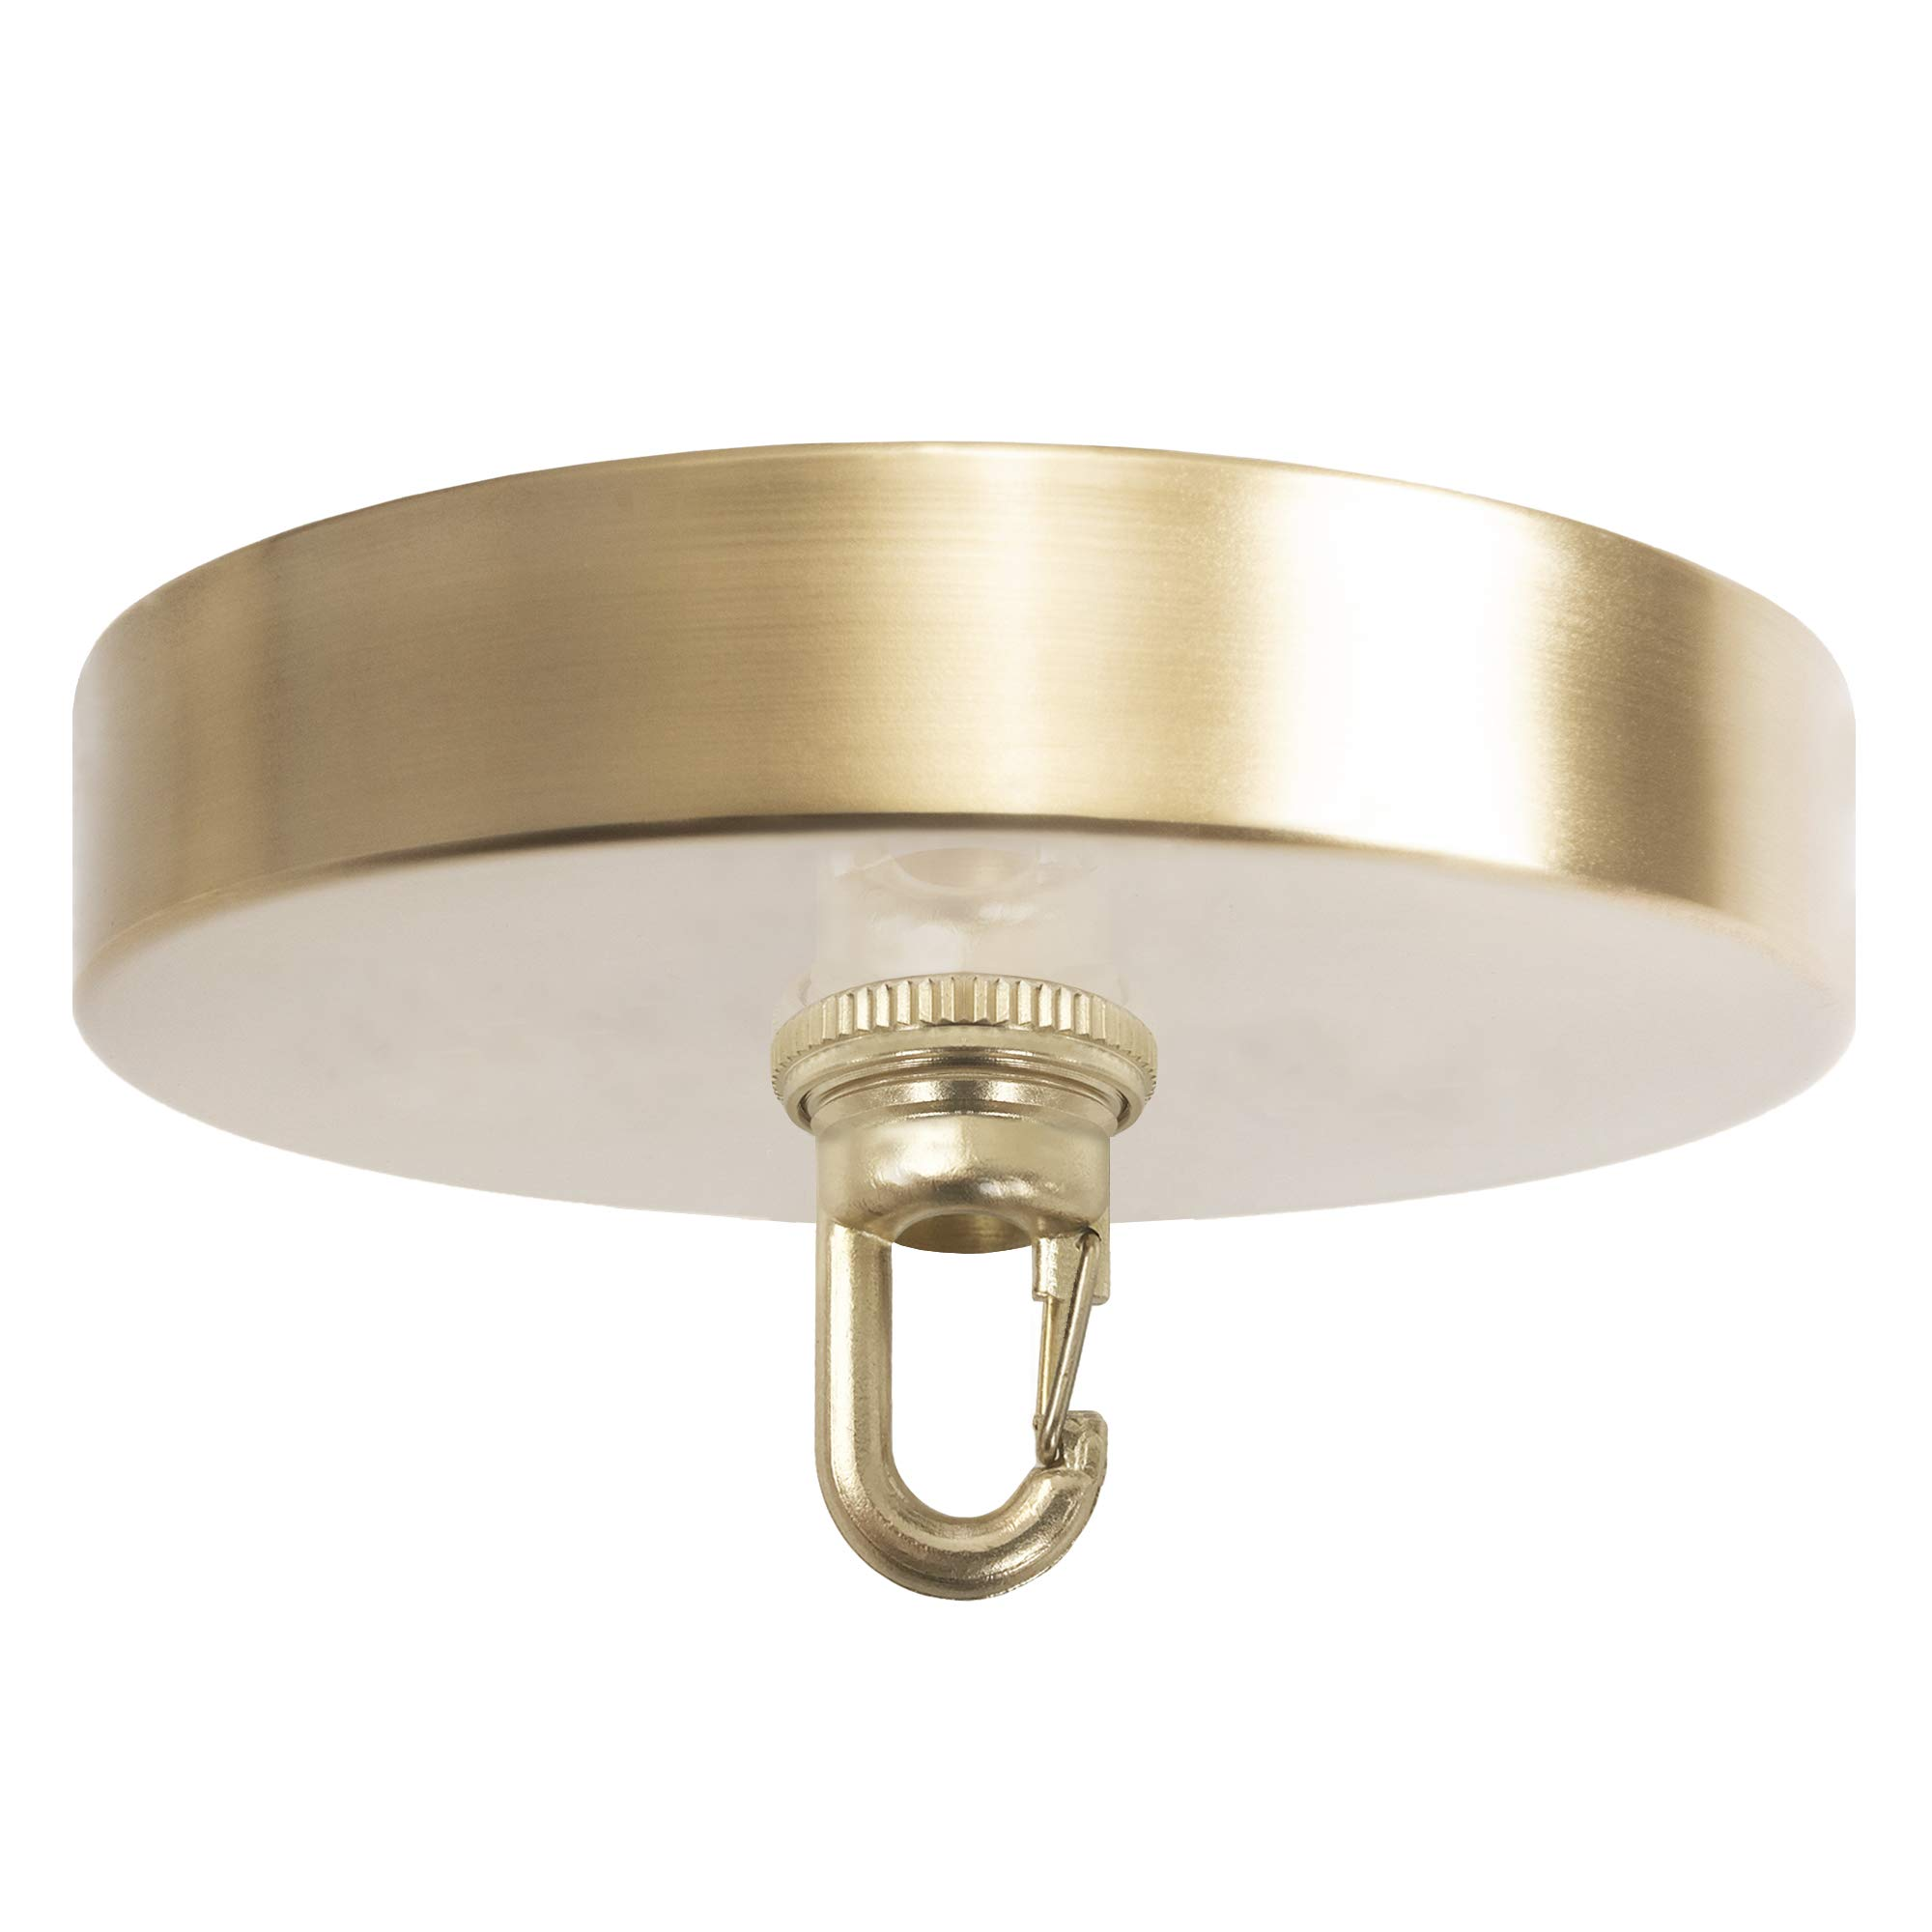 Amazon Com Flea Market Rx 5 Inch Heavy Duty Chandelier Canopy Kit 50 Lb Hook Ceiling Light Cover Plate Screw Collar Snap Hook Mounting Hardware For Hanging Chained Pendant Lighting Made In Usa